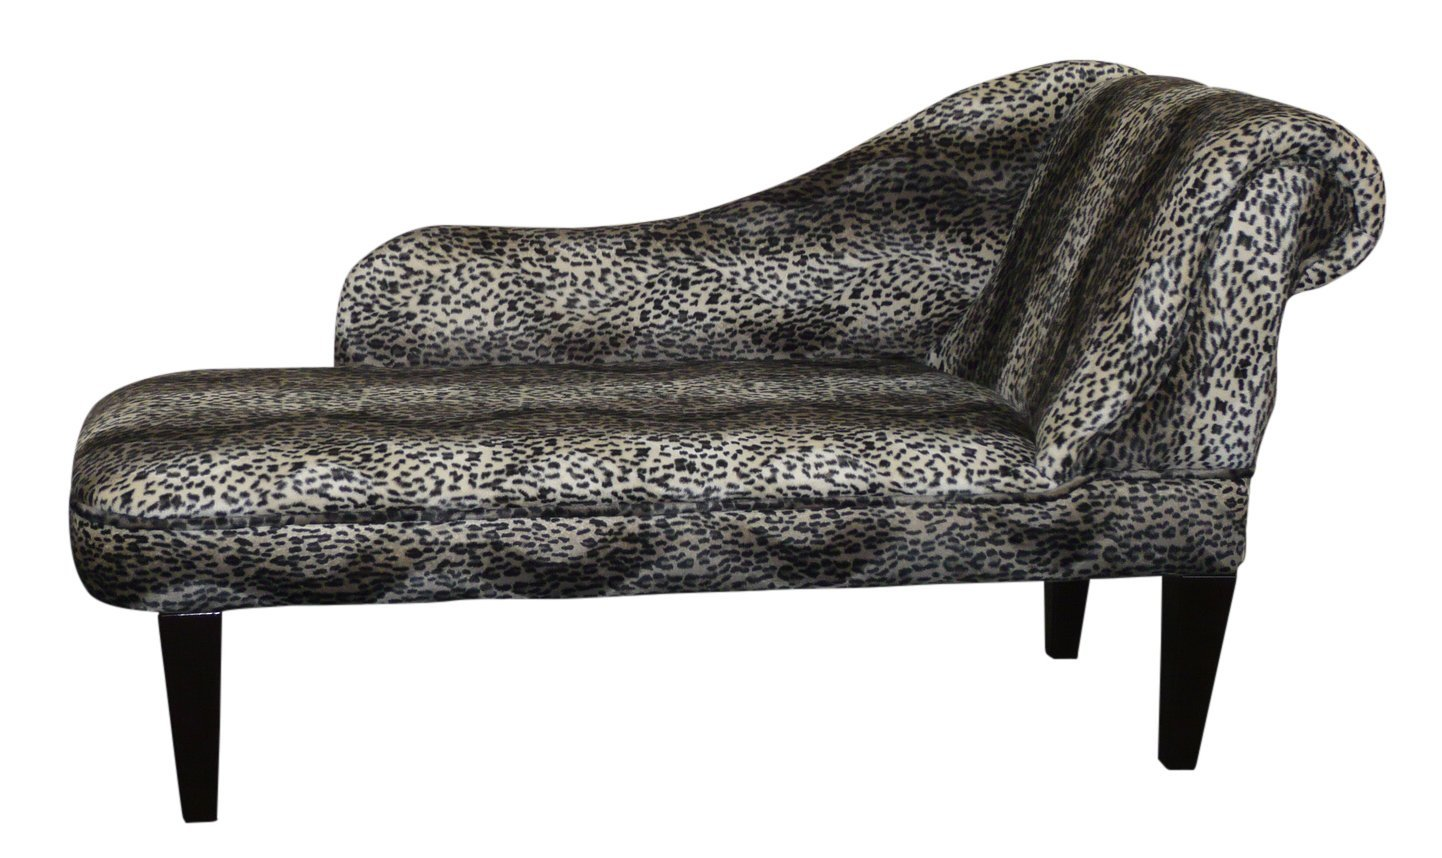 Five hotel style bedroom ideas to steal aol uk for Animal print chaise longue